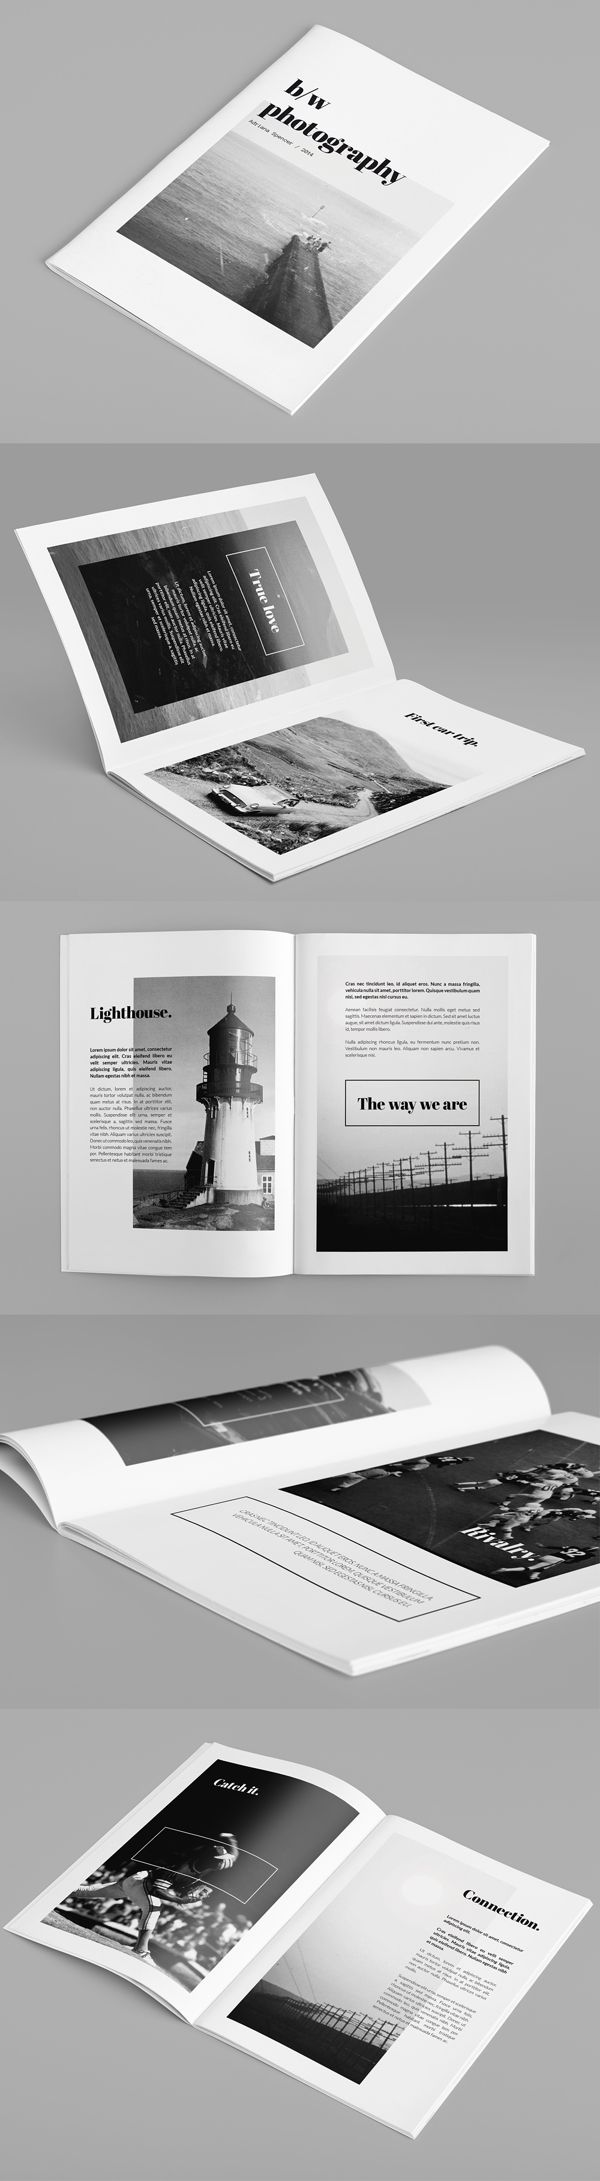 This layout combines imagery and text to keep the spread interesting and lively.